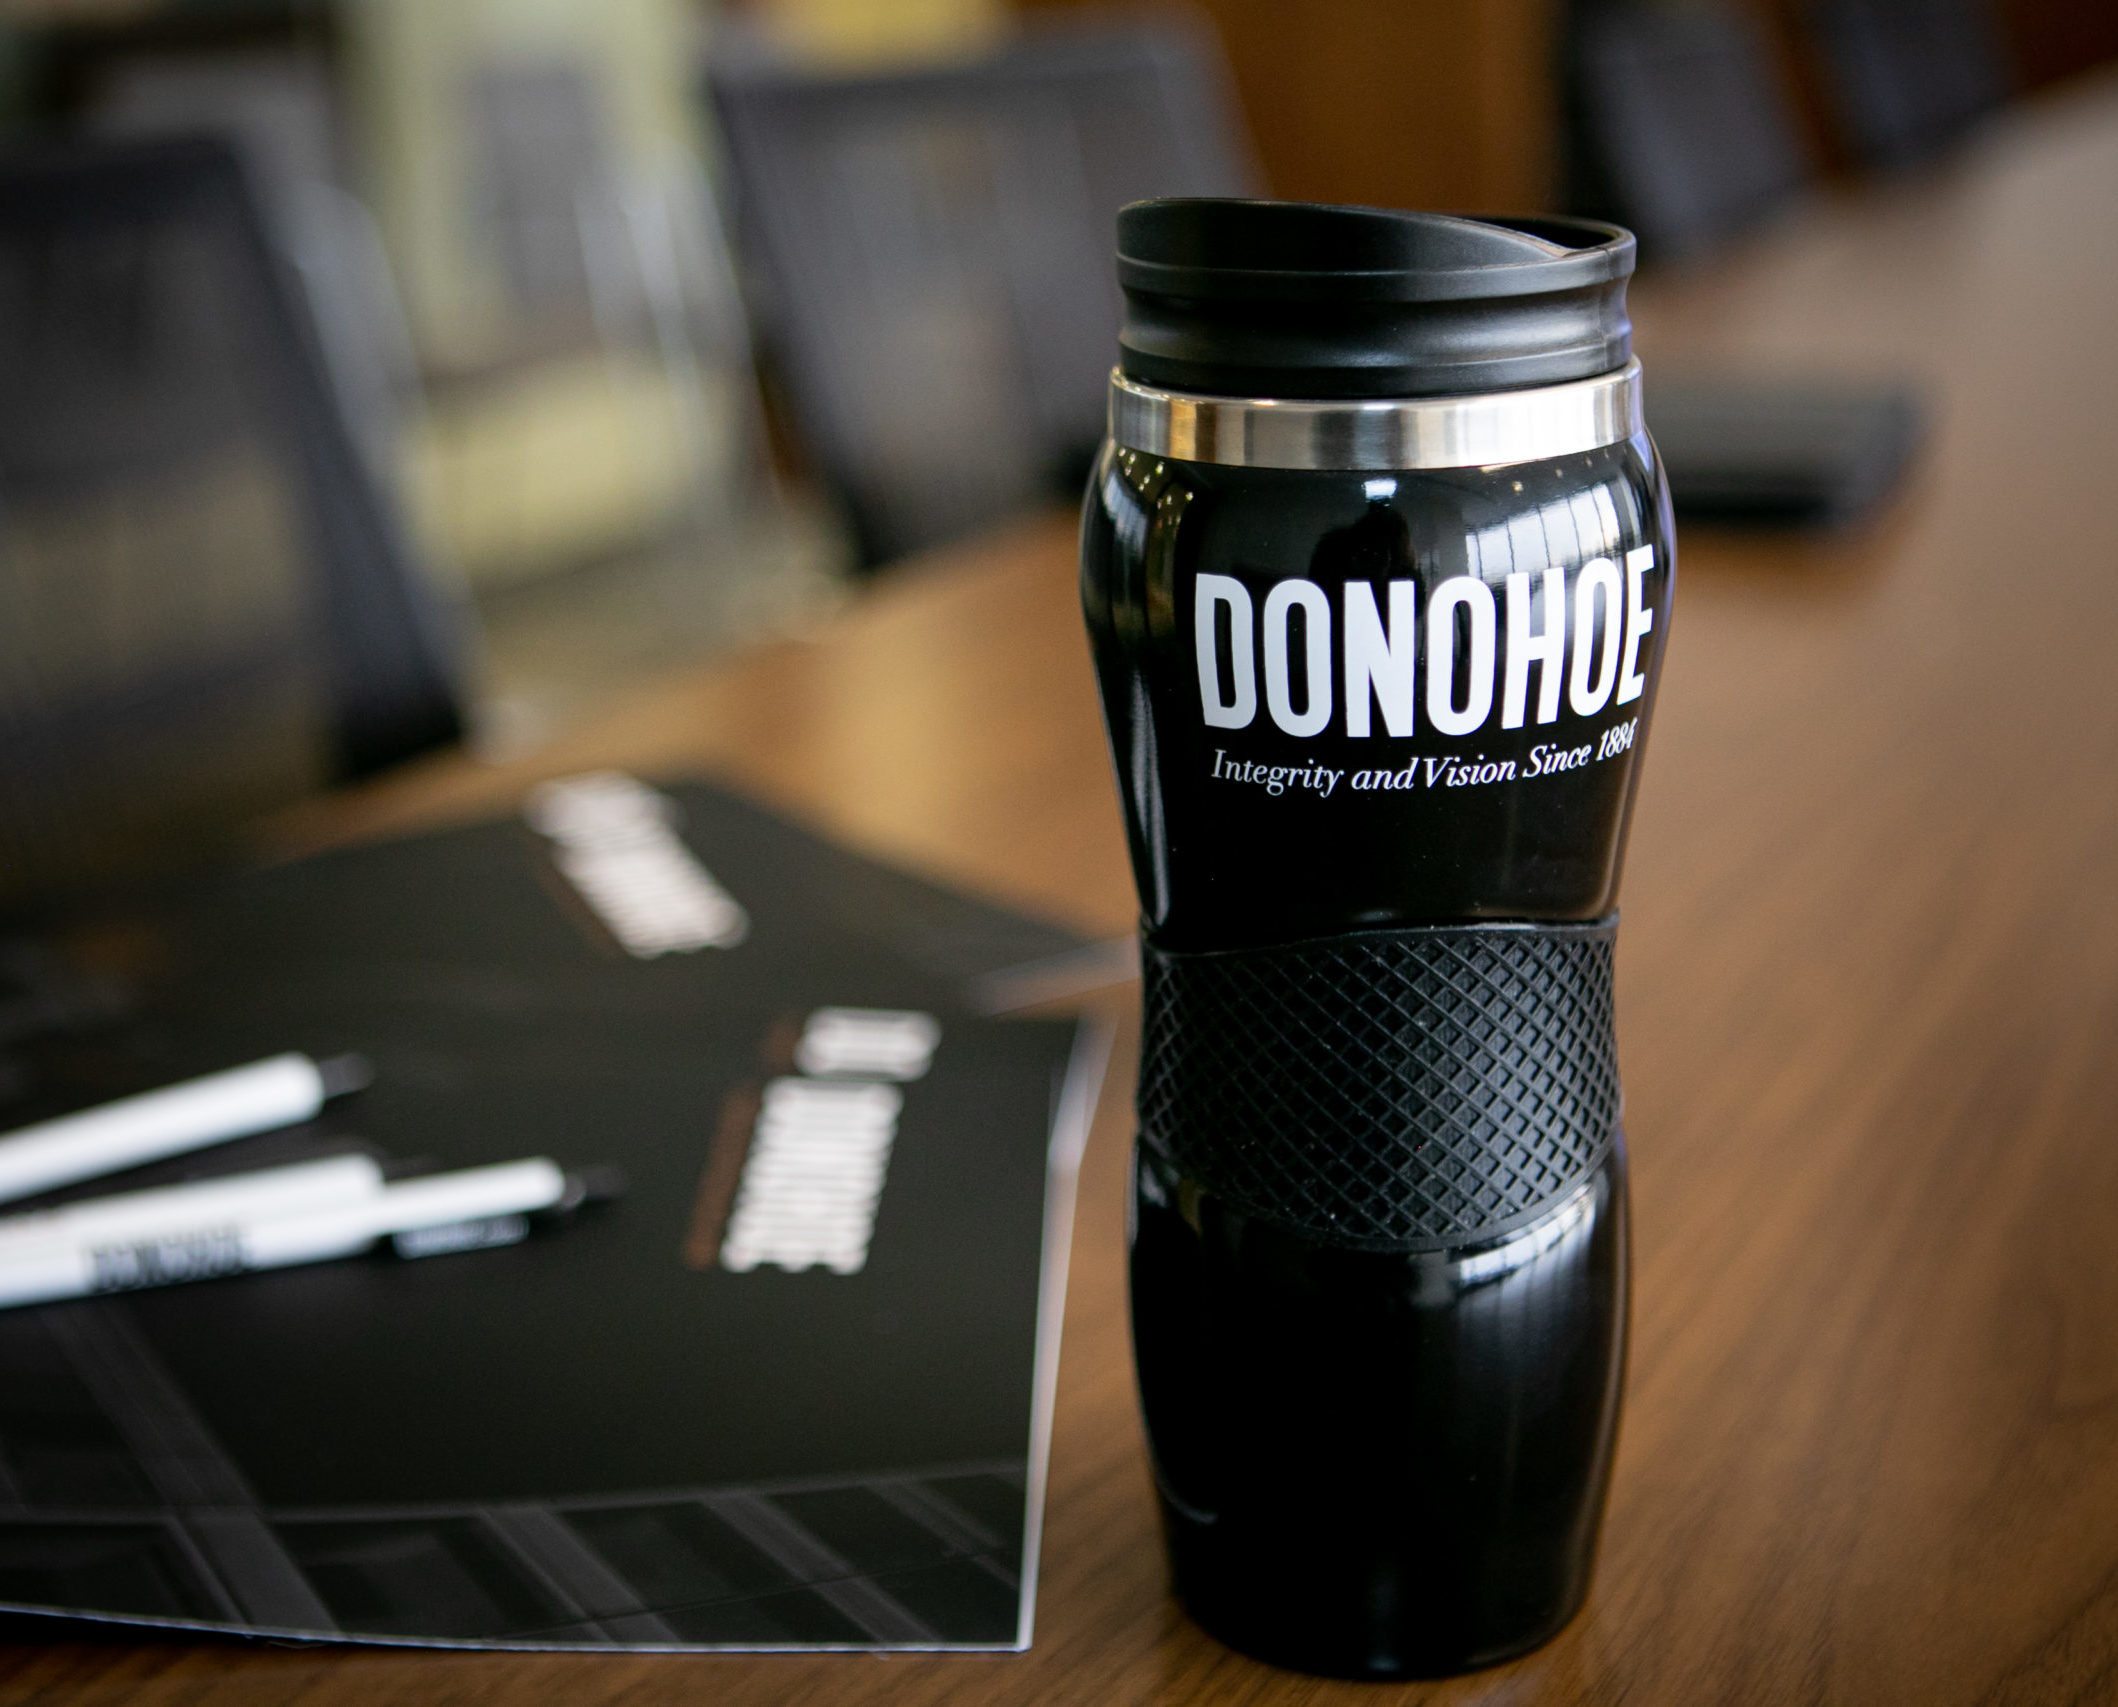 Donohoe branded business folder, pens and coffee flask